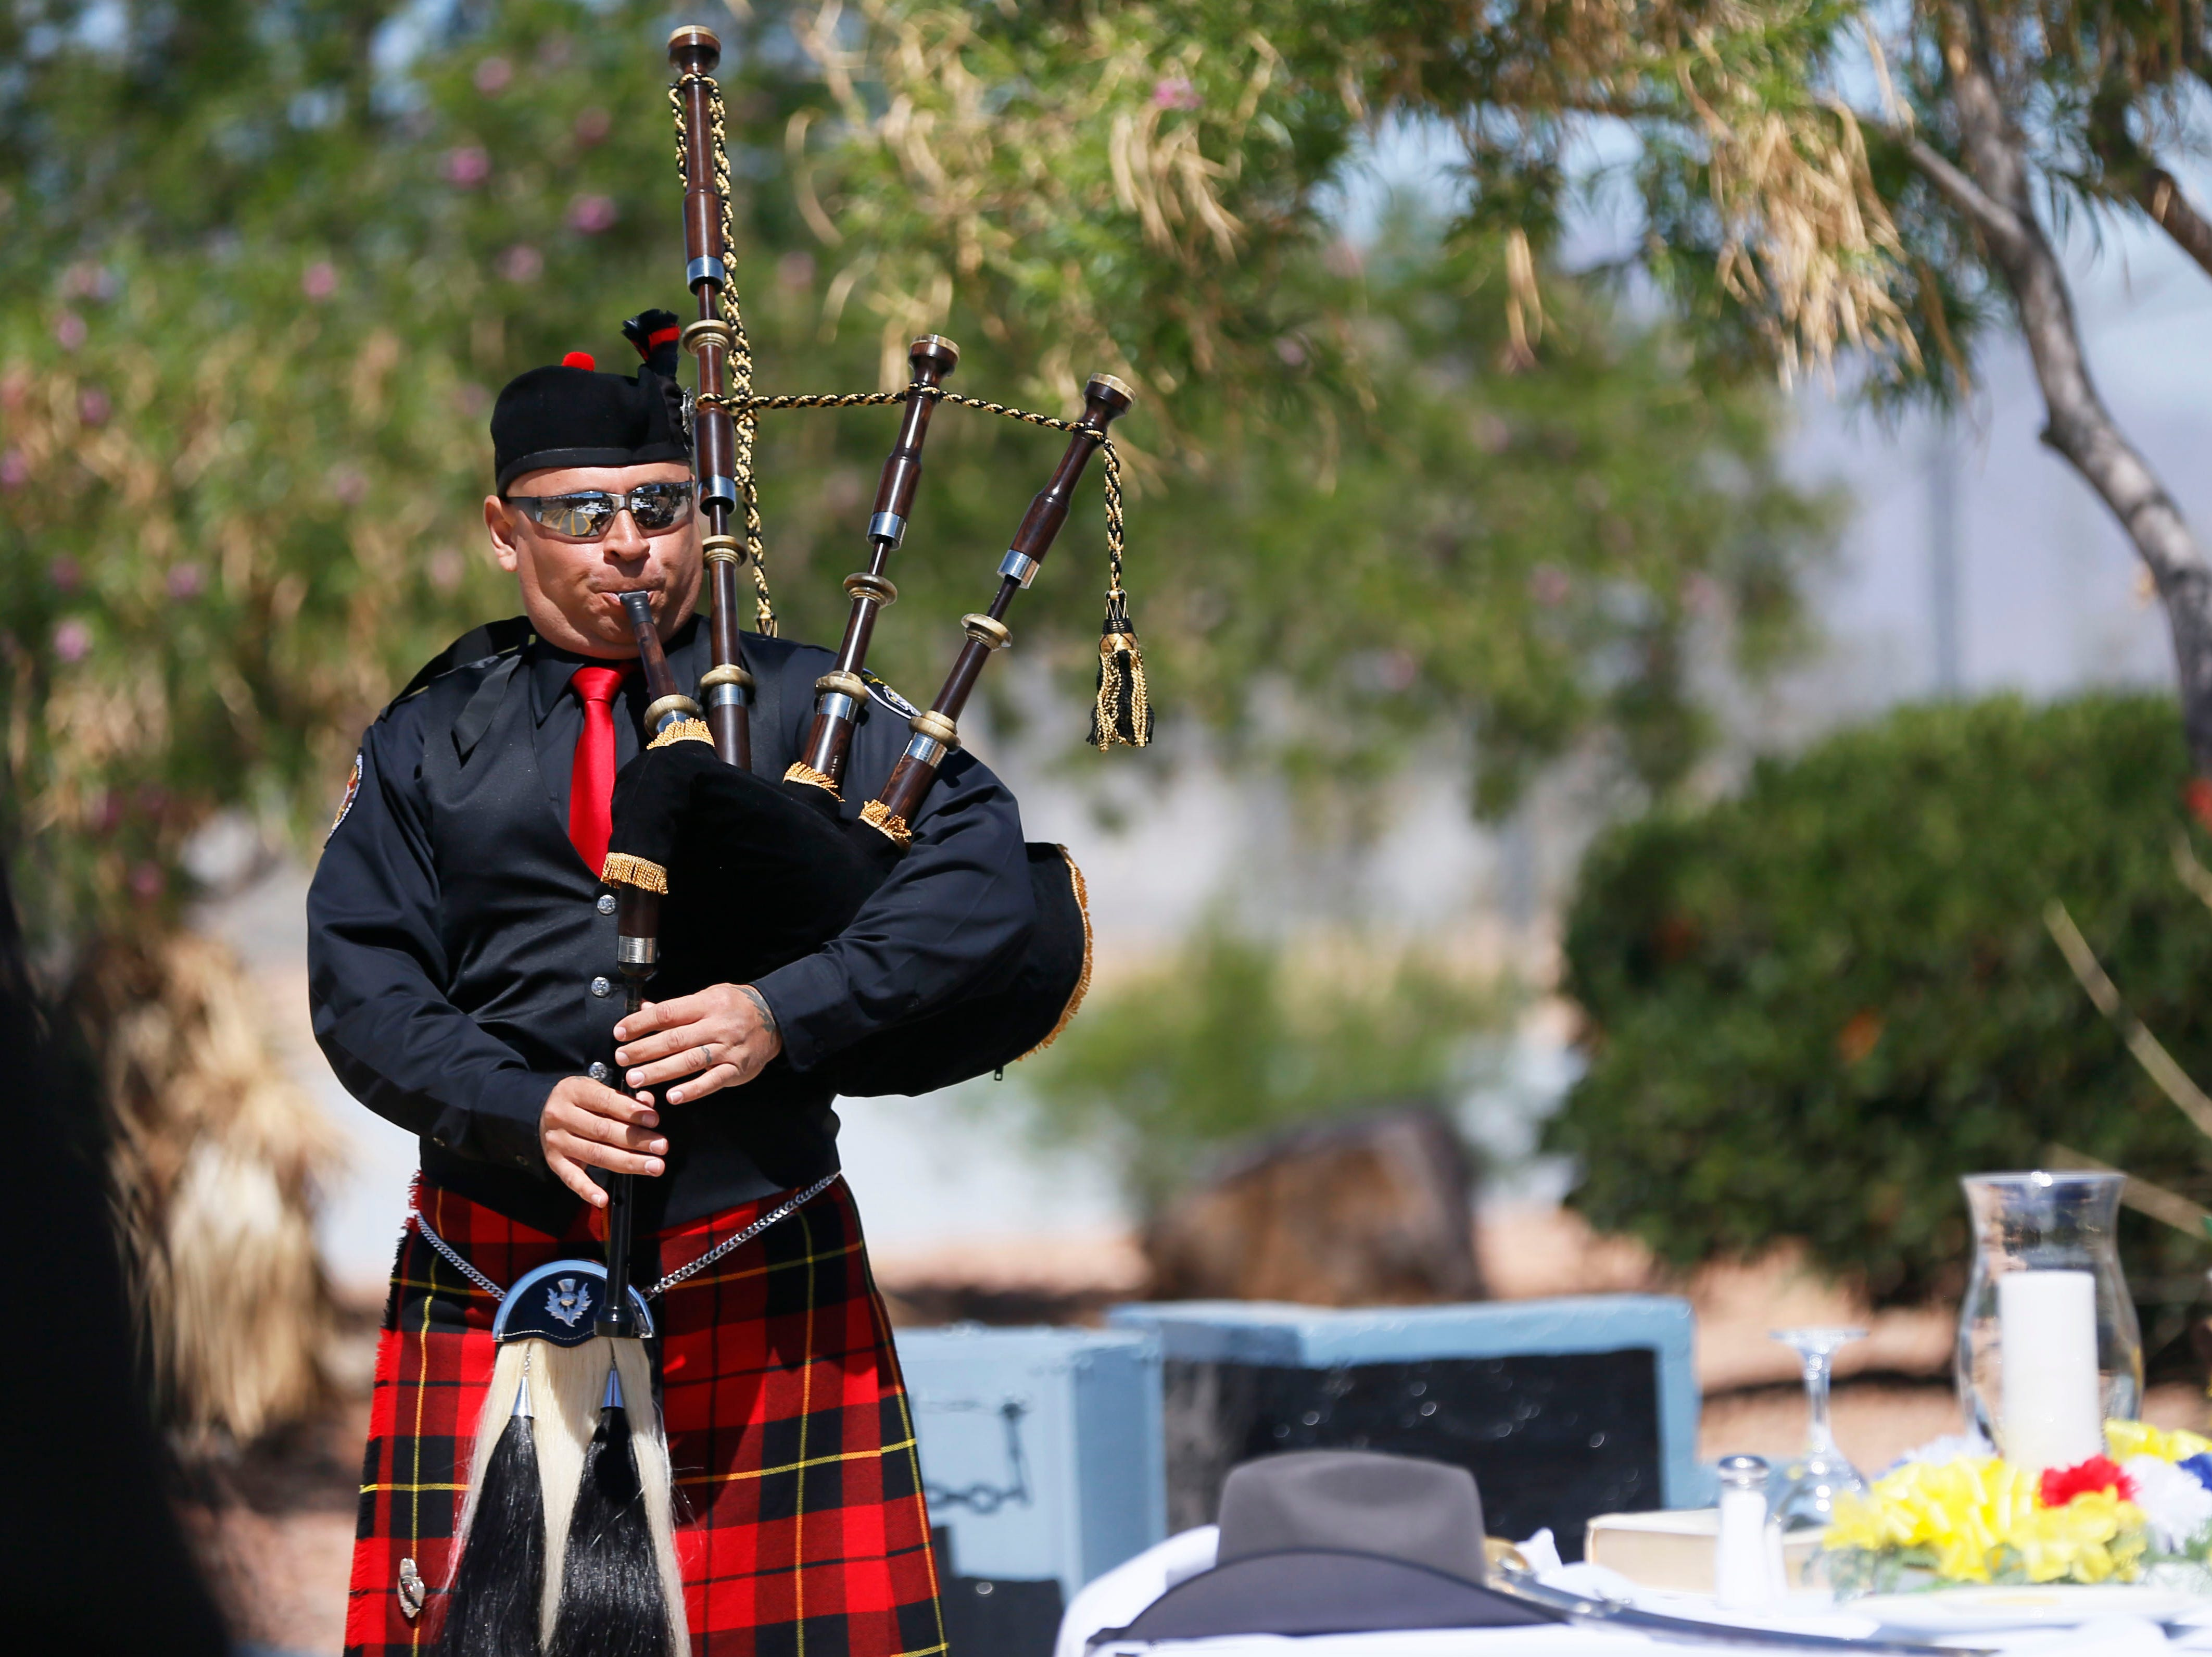 Andy Olivarez, fire department bagpipes, performs during the gathering to honor the memory of fallen correctional officers Wednesday, May 8, at Rogelio Sanchez State Jail in El Paso.